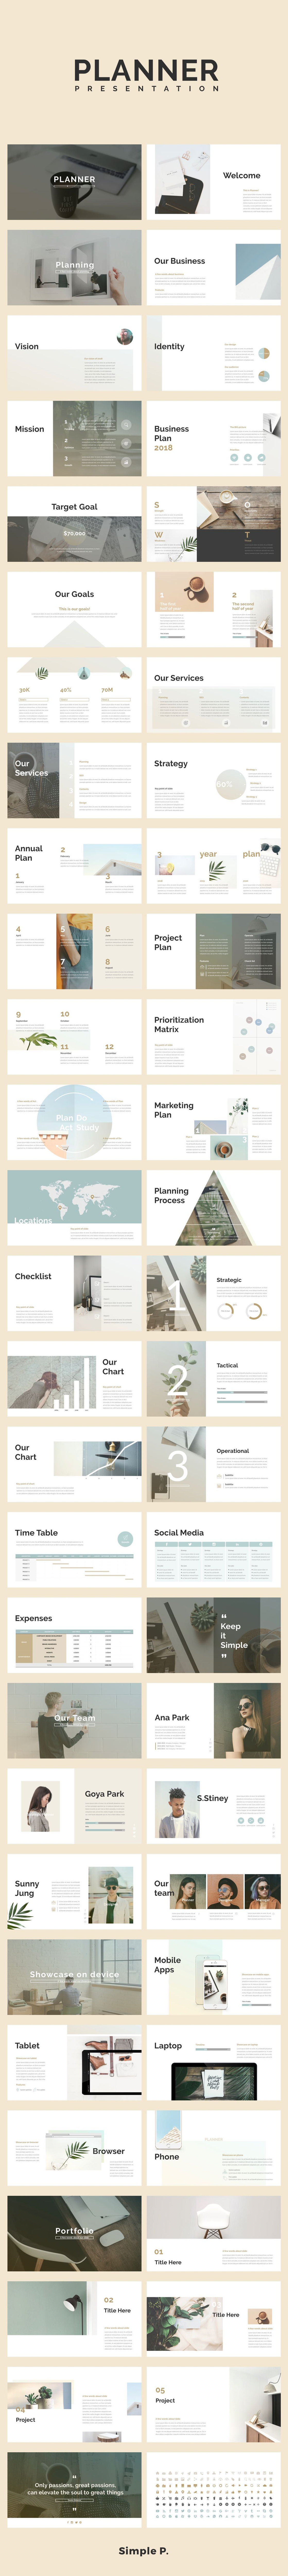 planner powerpoint template 2018 business planning presentation